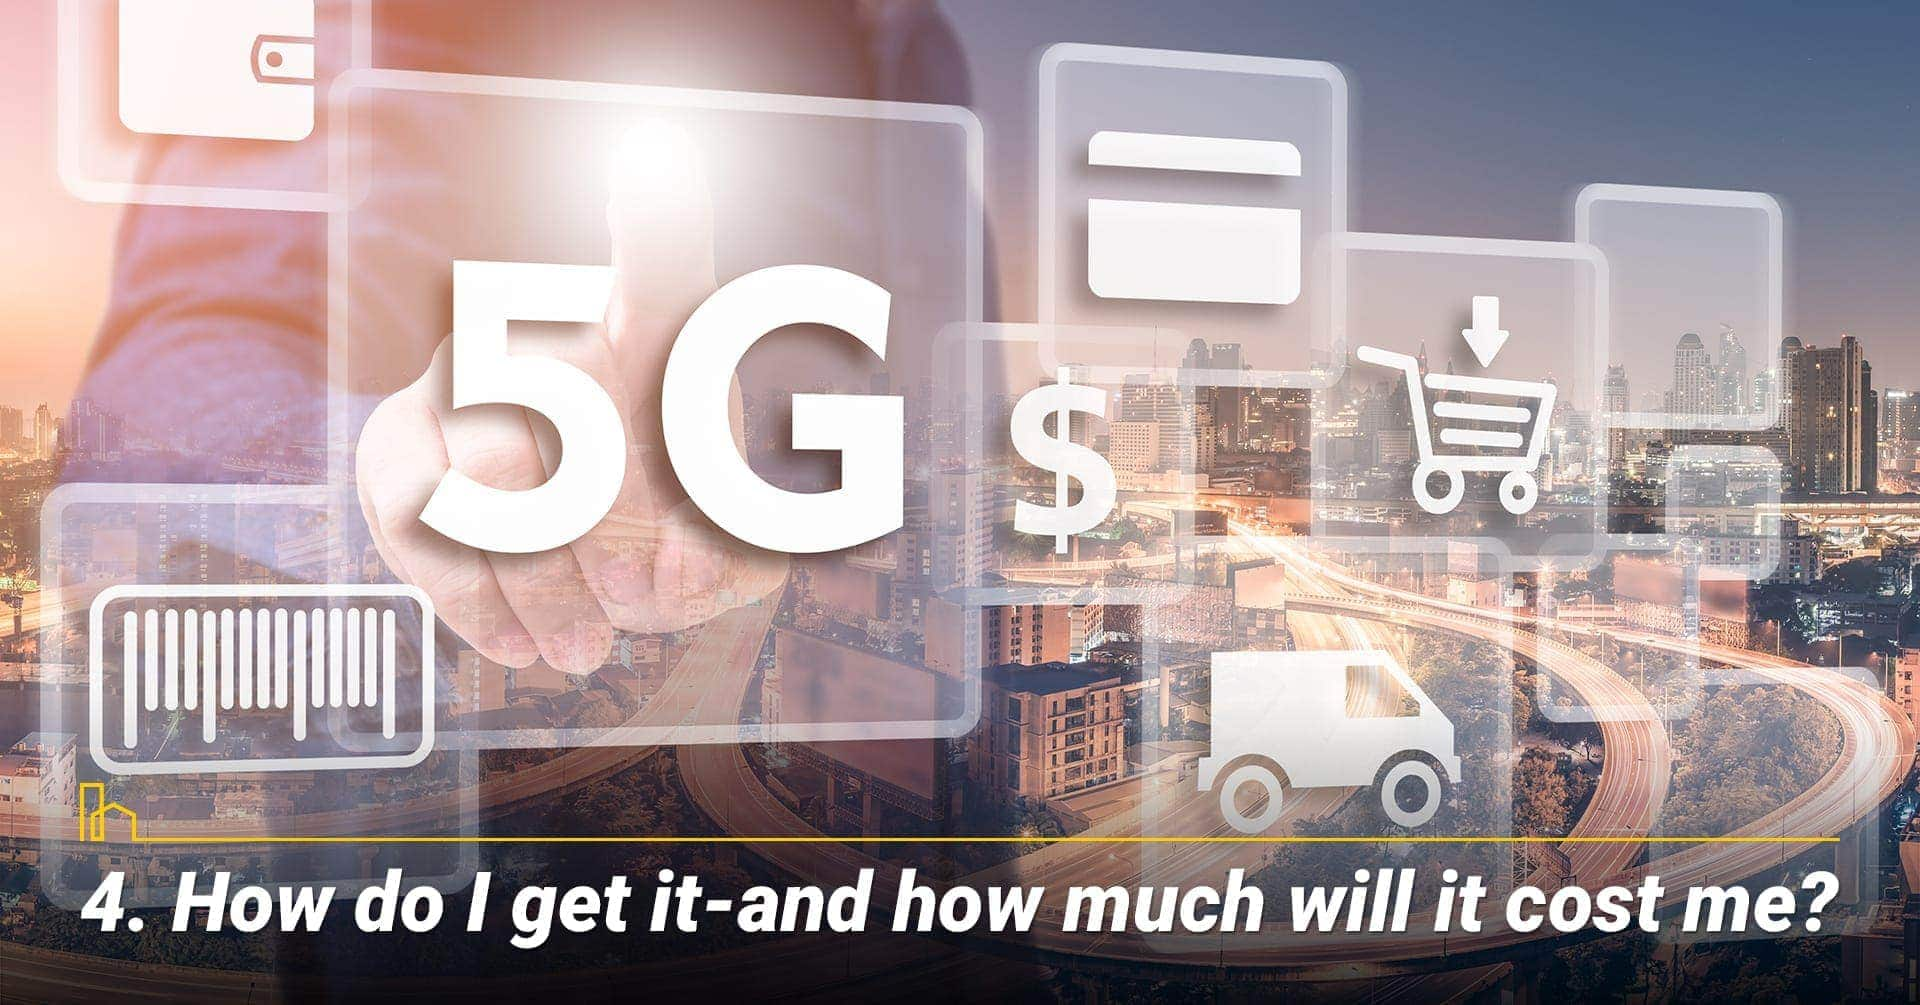 How do I get it—and how much will it cost me? Cost of 5G